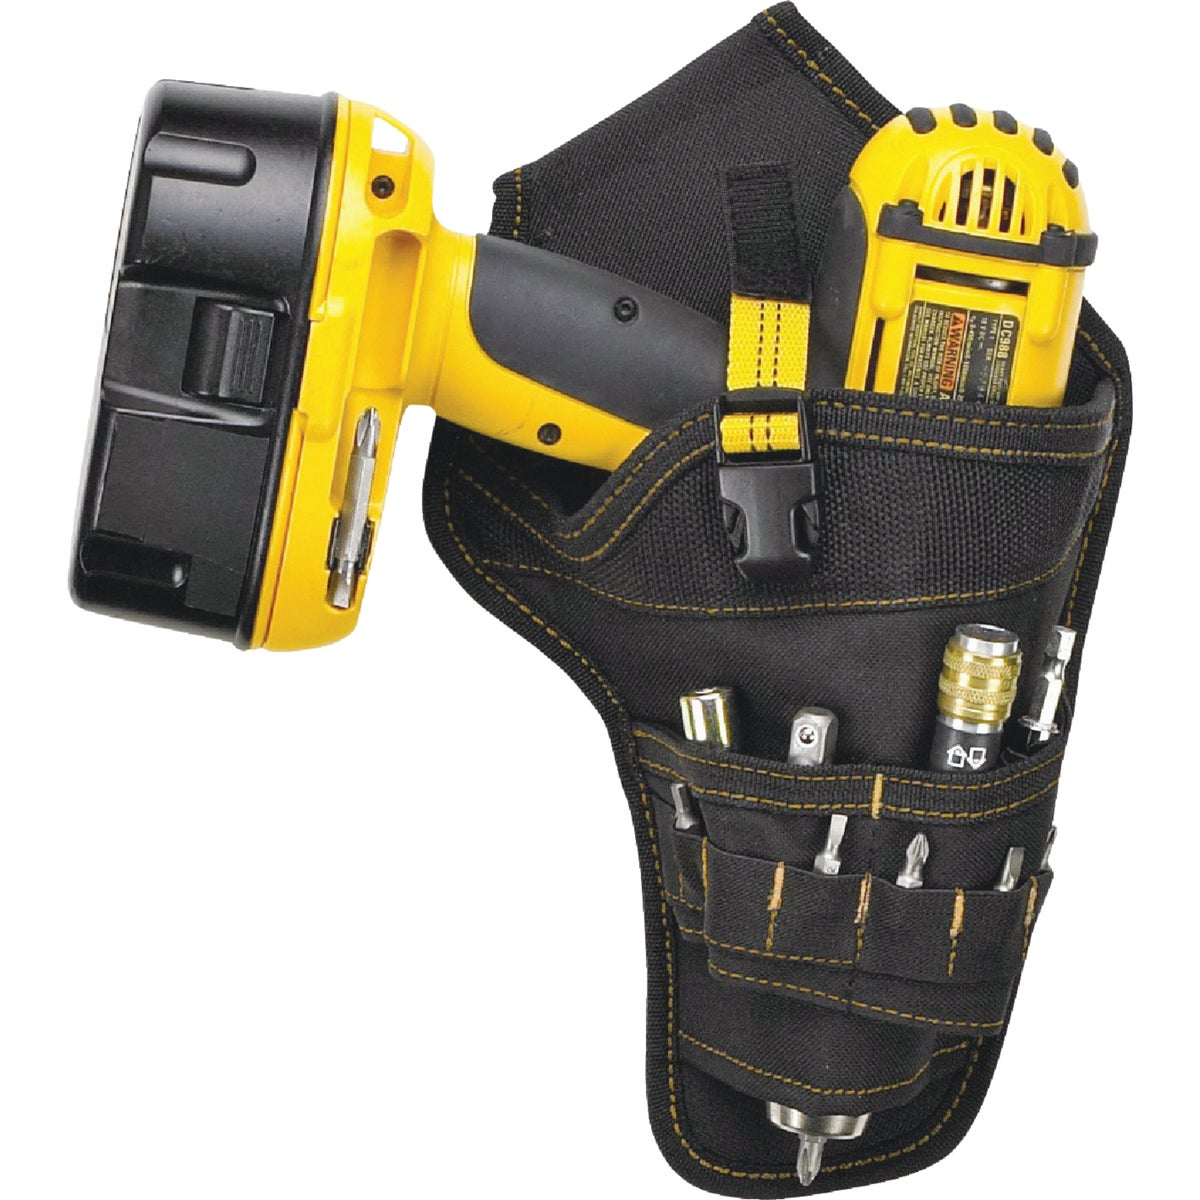 CORDLESS DRILL HOLSTER